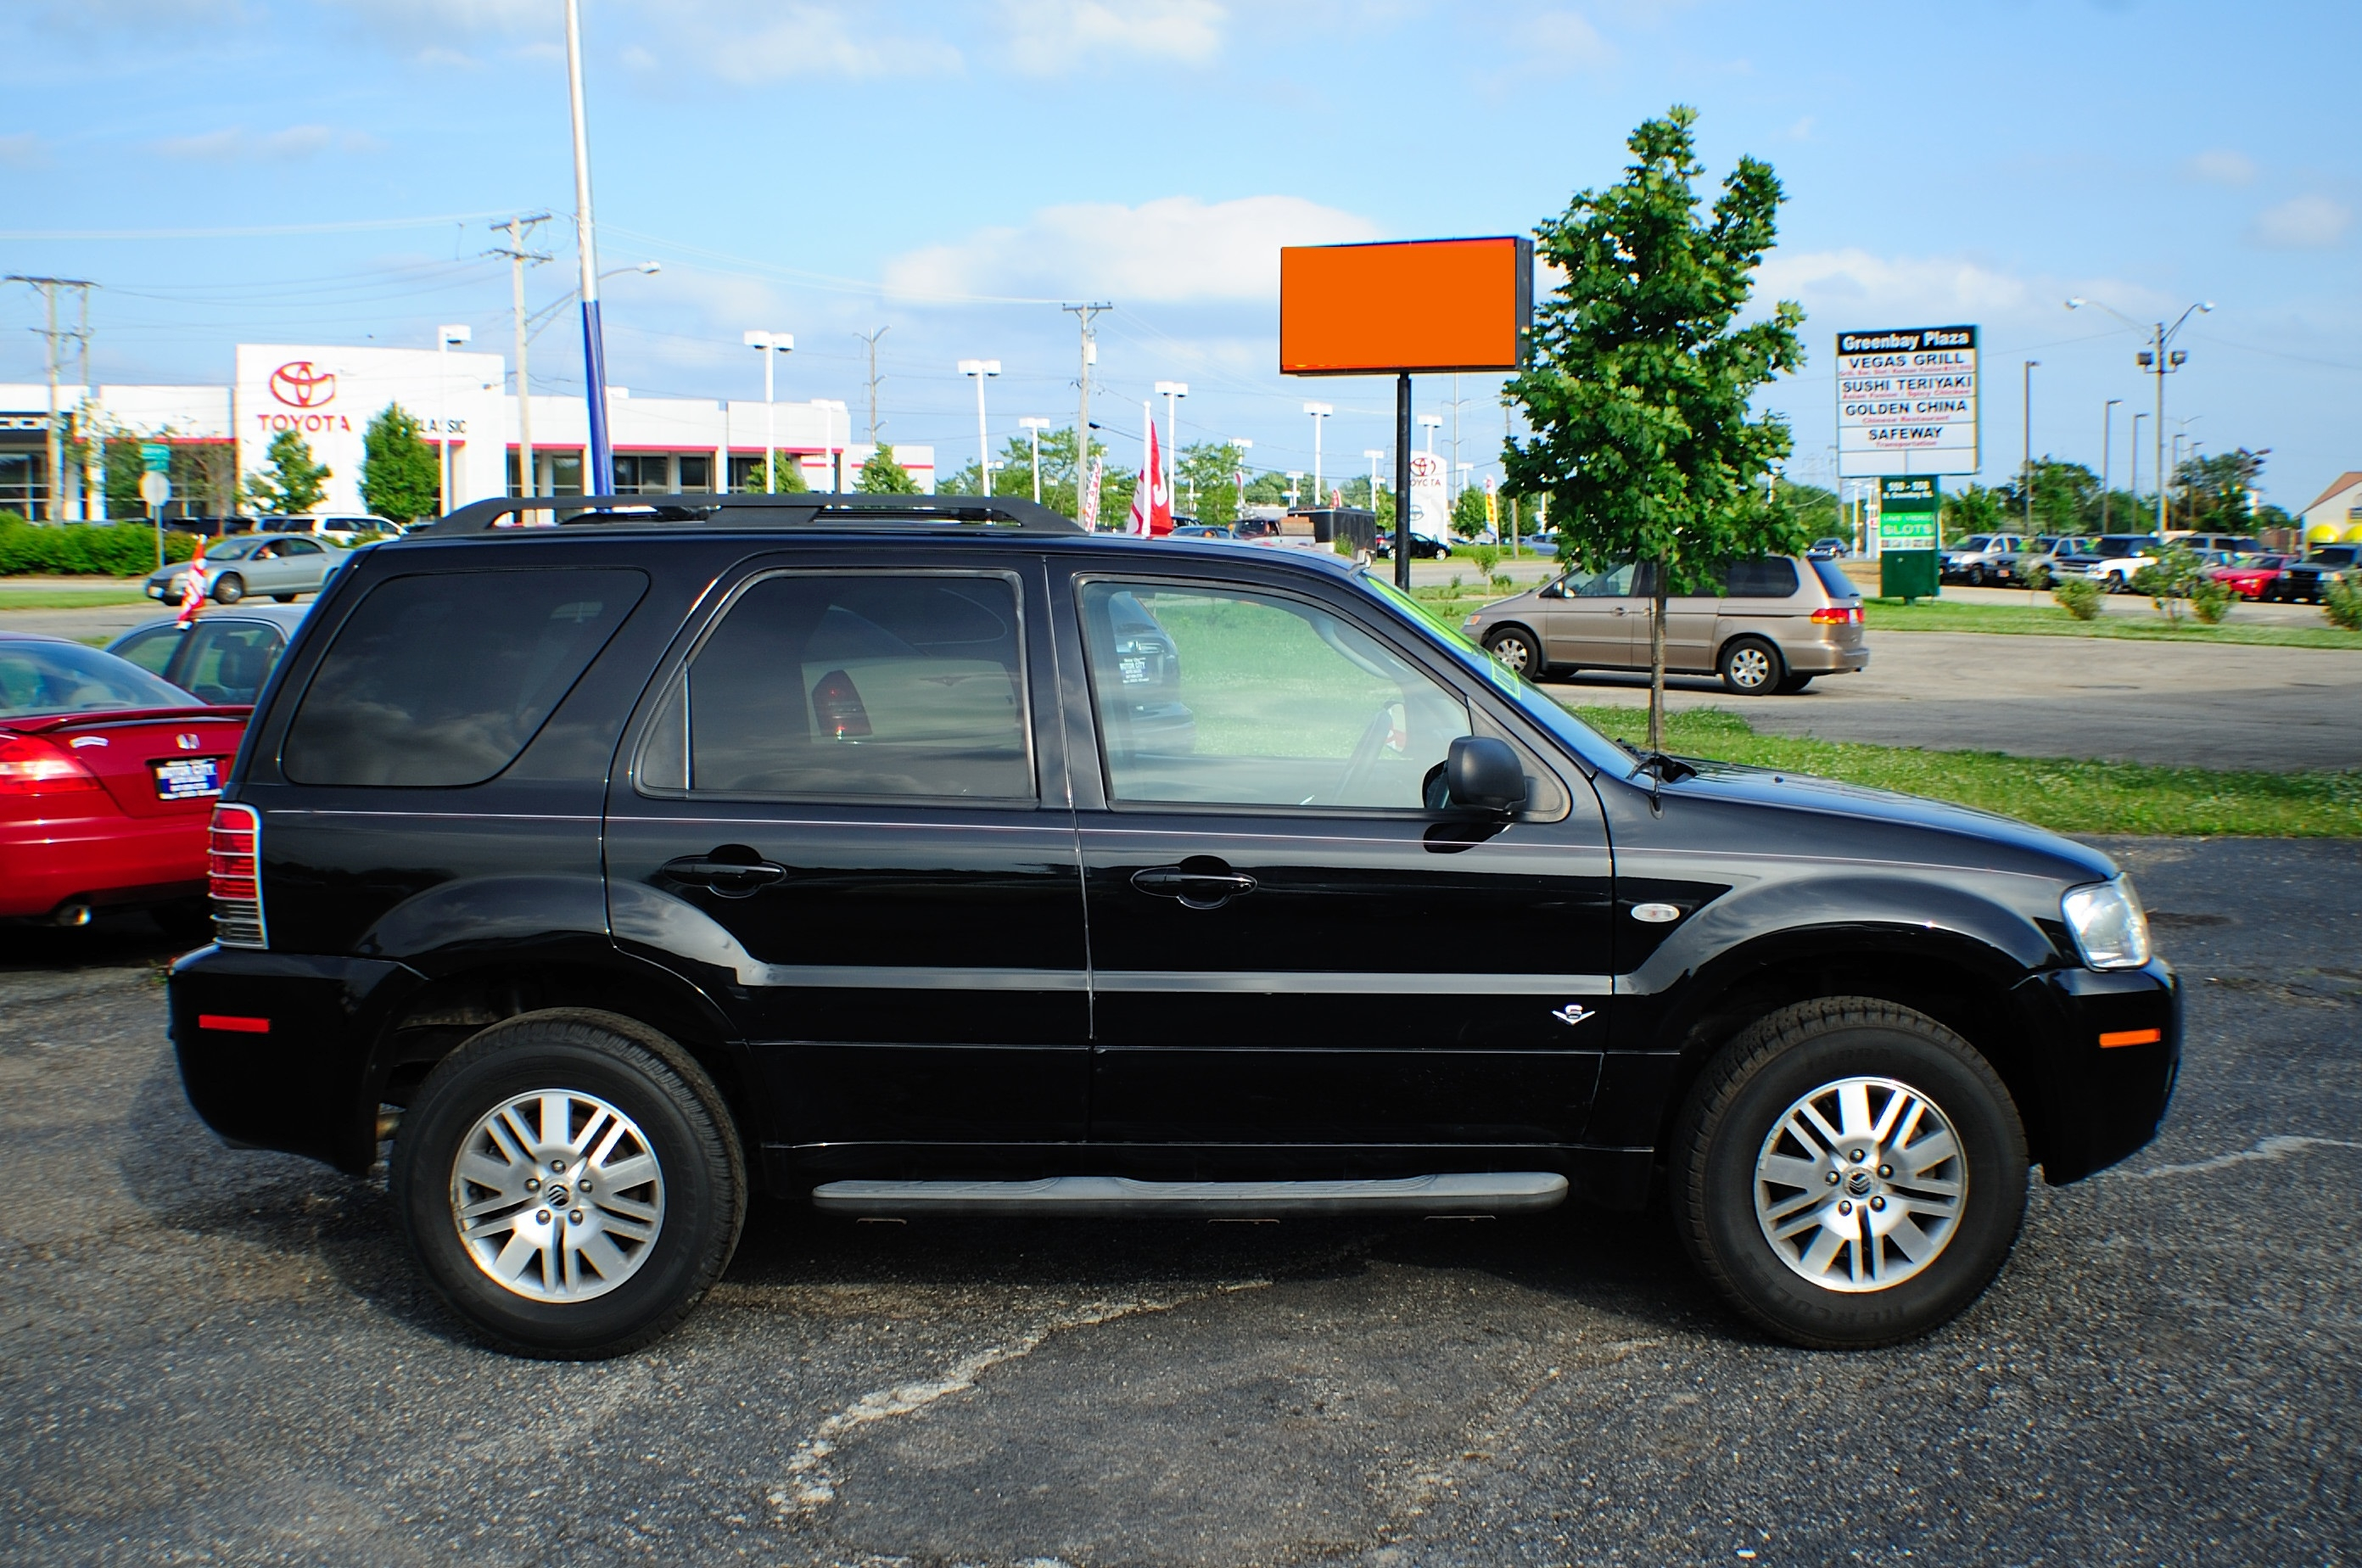 2006 Mercury Mariner Black AWD V6 Used SUV Wagon Sale Lindenhurst Gurnee